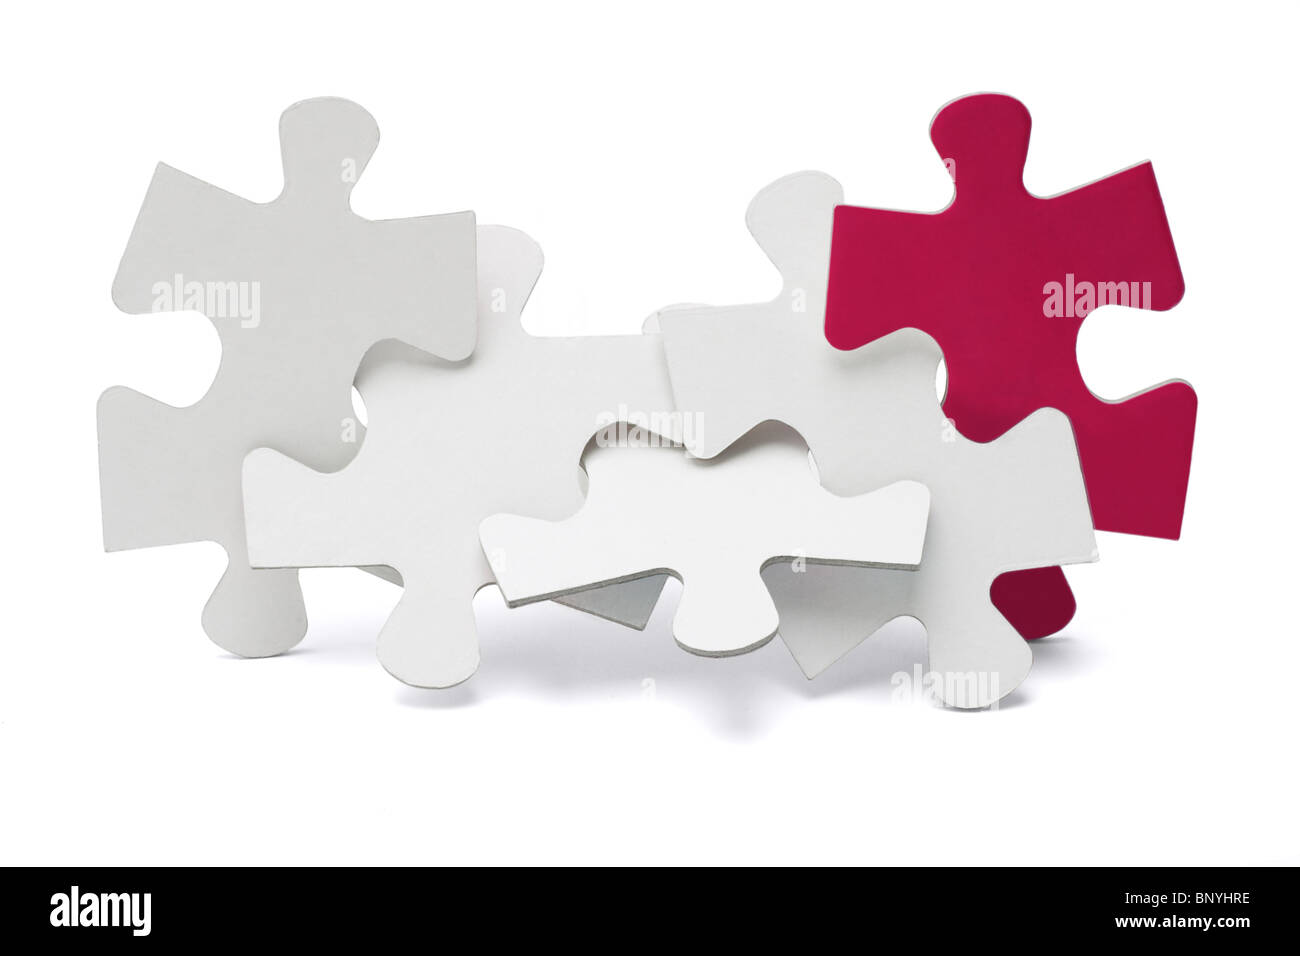 Jigsaw puzzle pieces interlocked and standing on white background - Stock Image